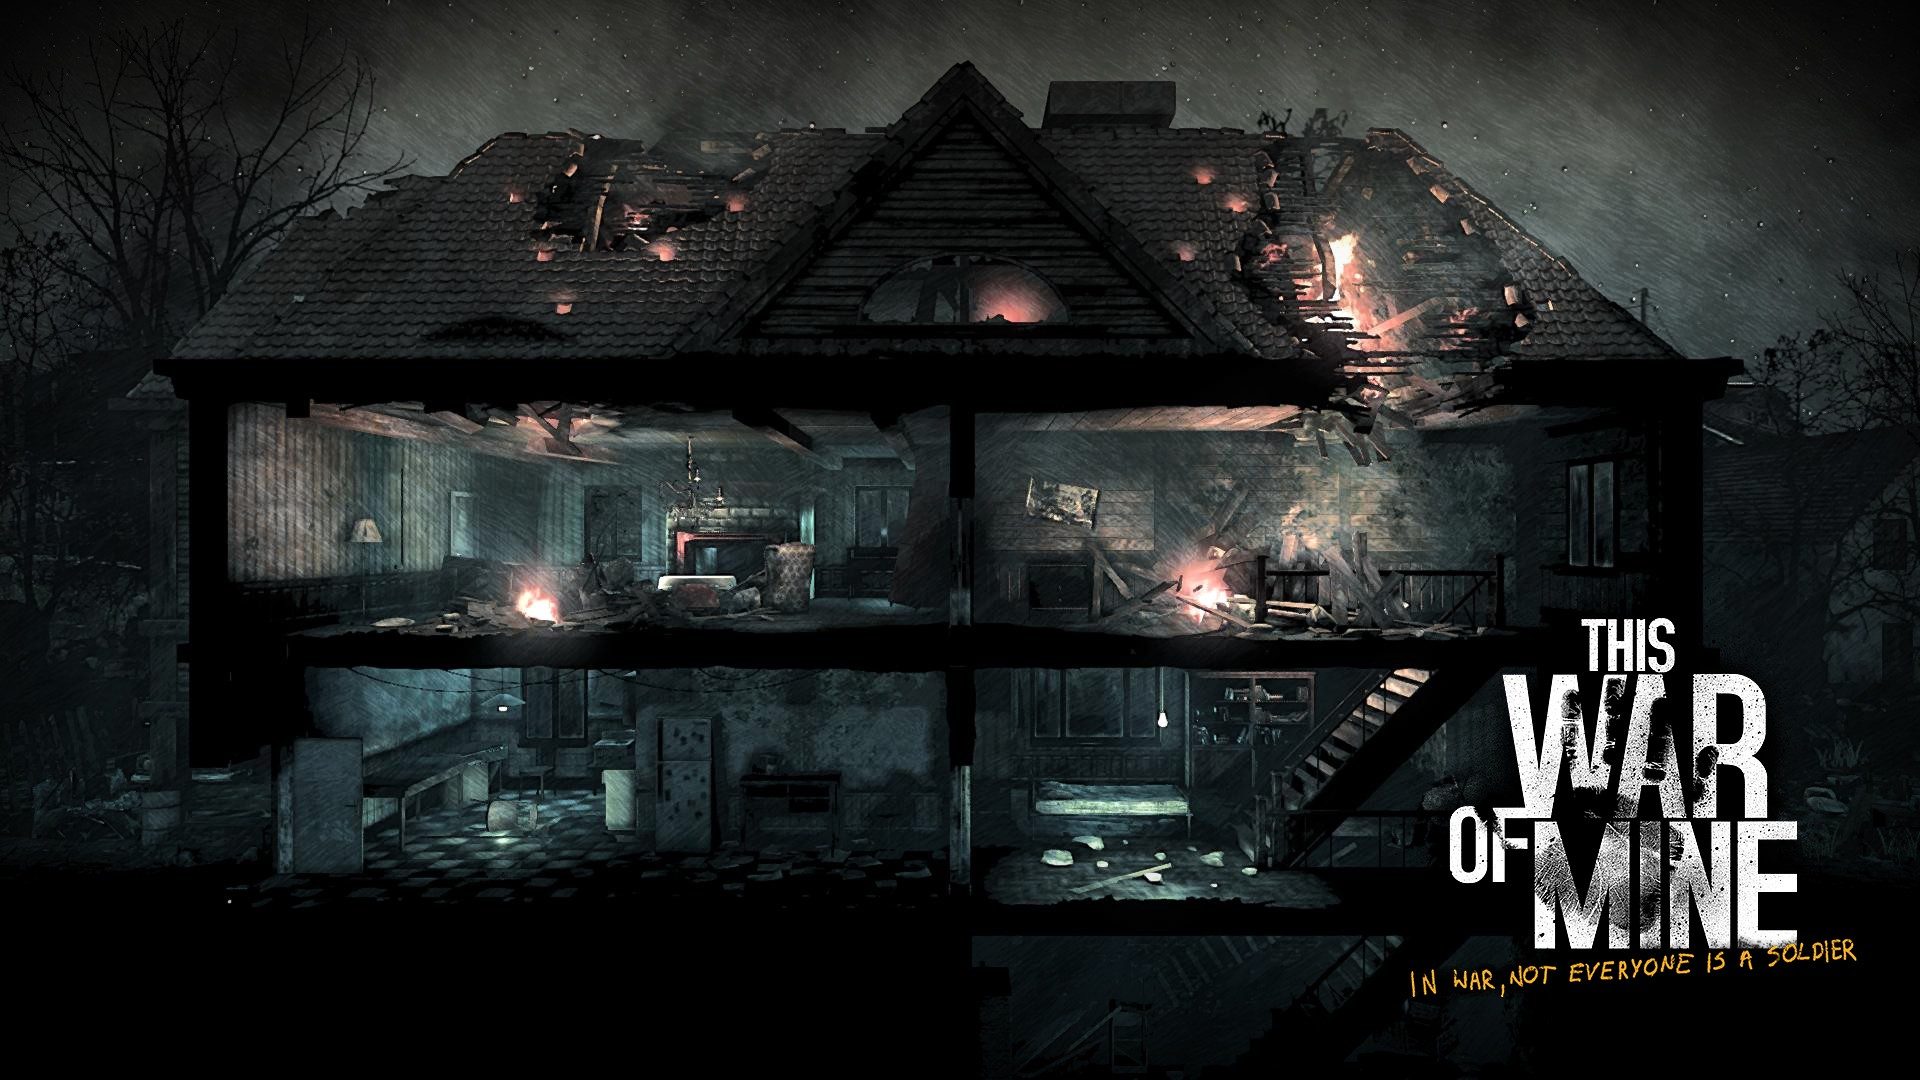 This War Of Mine Wallpaper: Emotion And Play In This War Of Mine